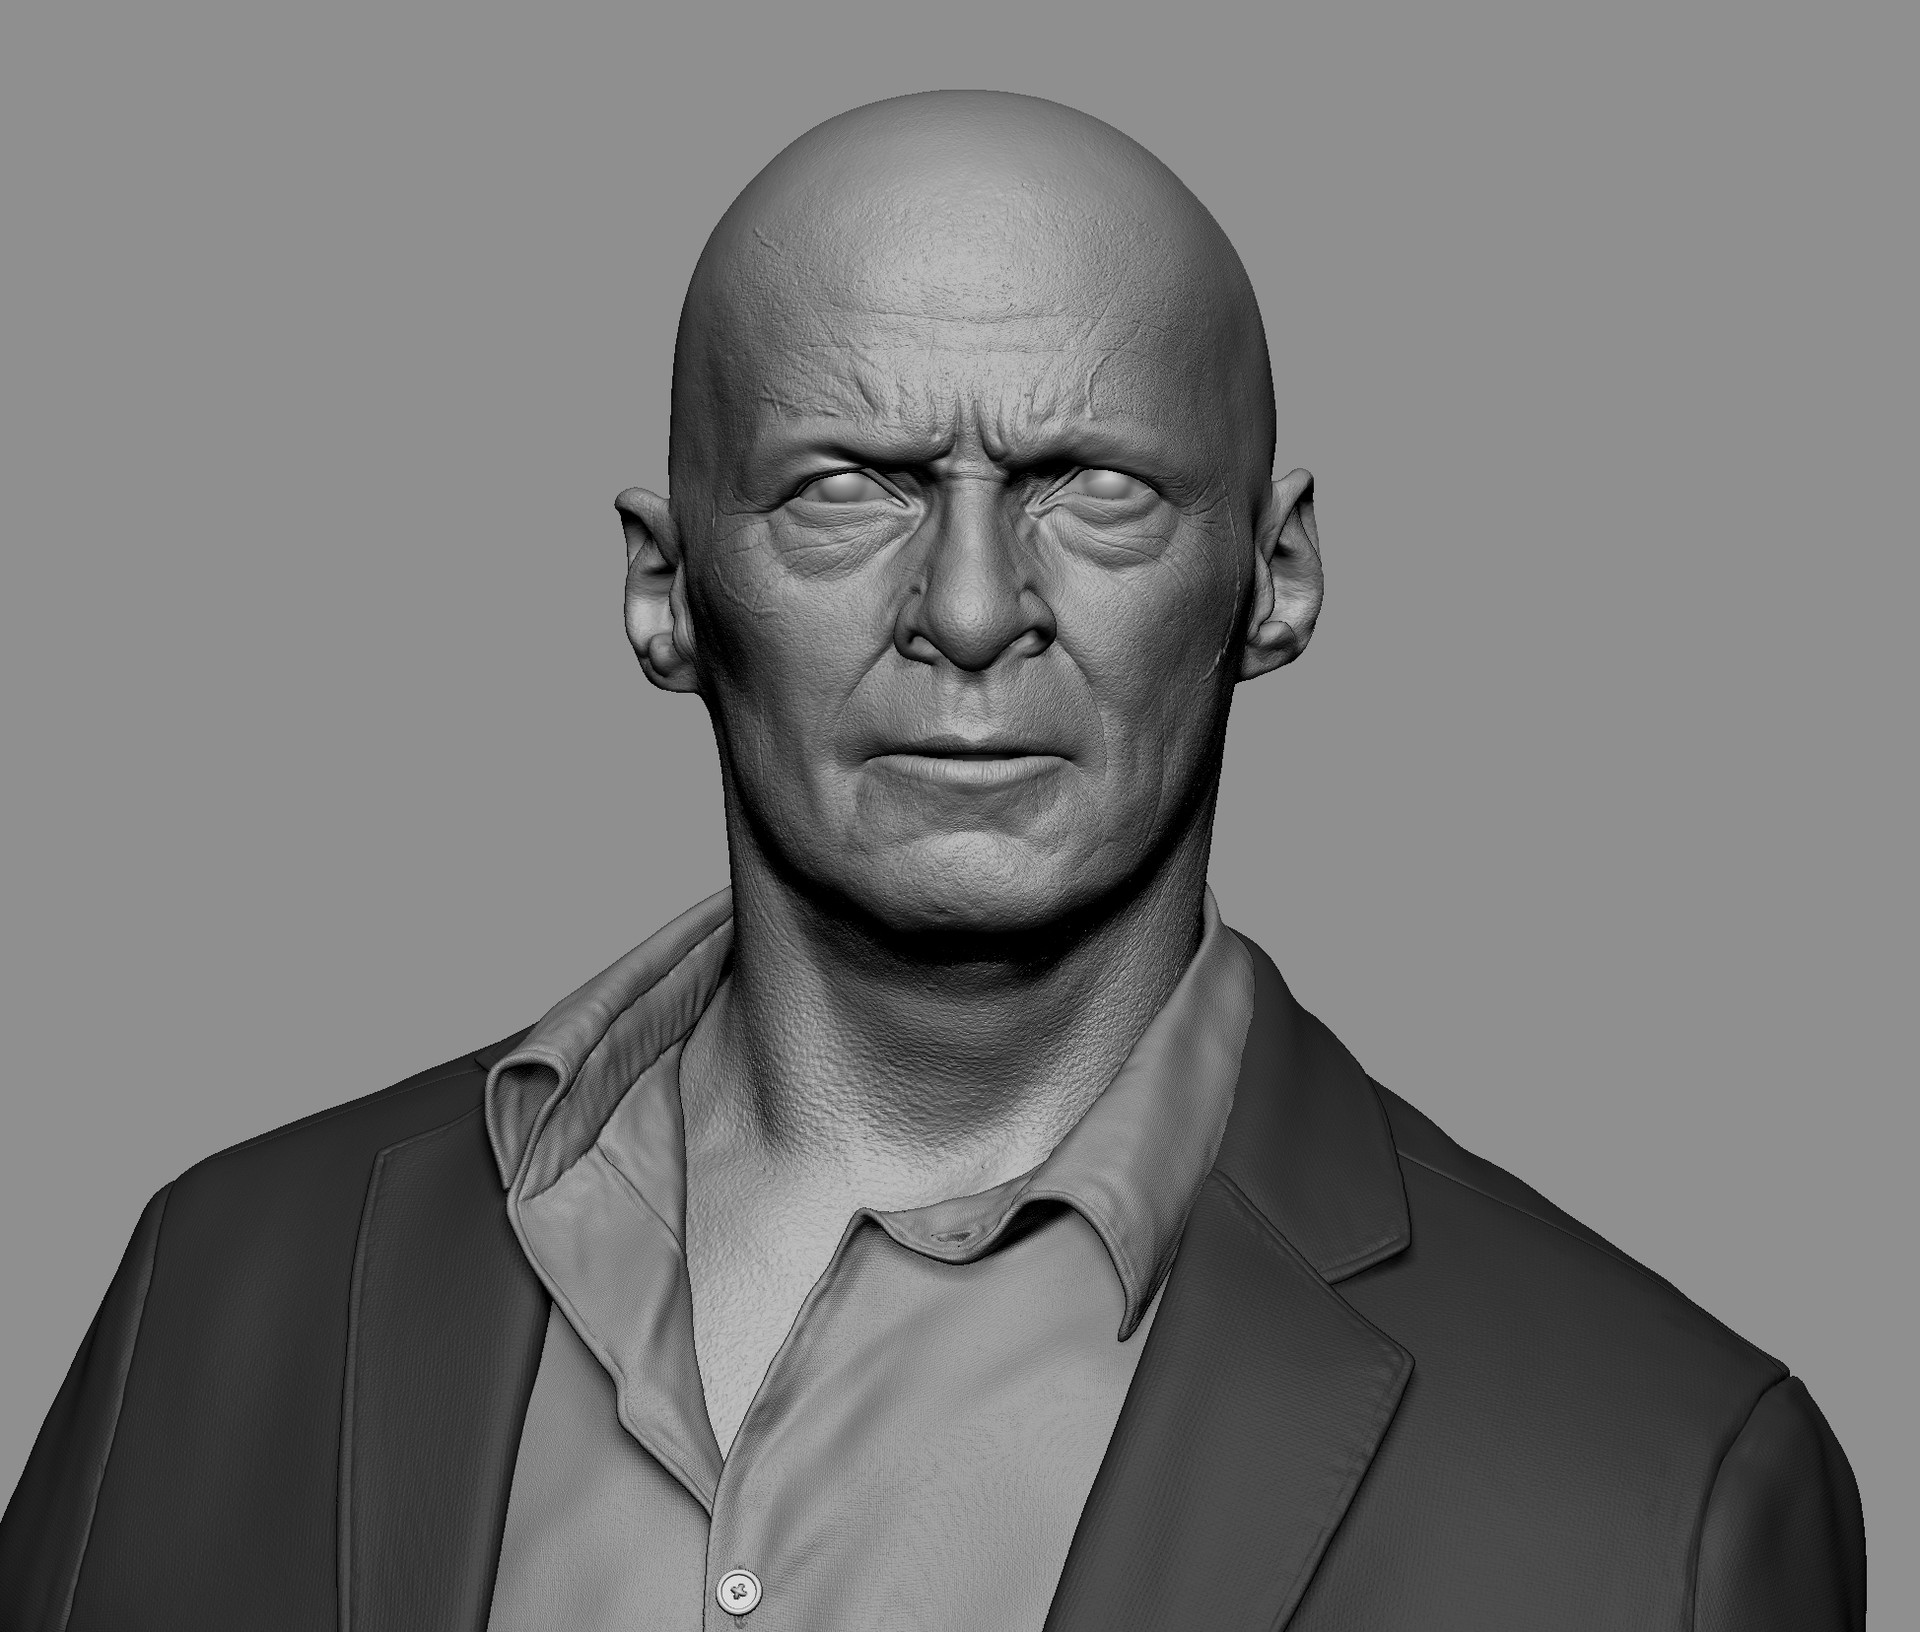 the zbrush sculpt